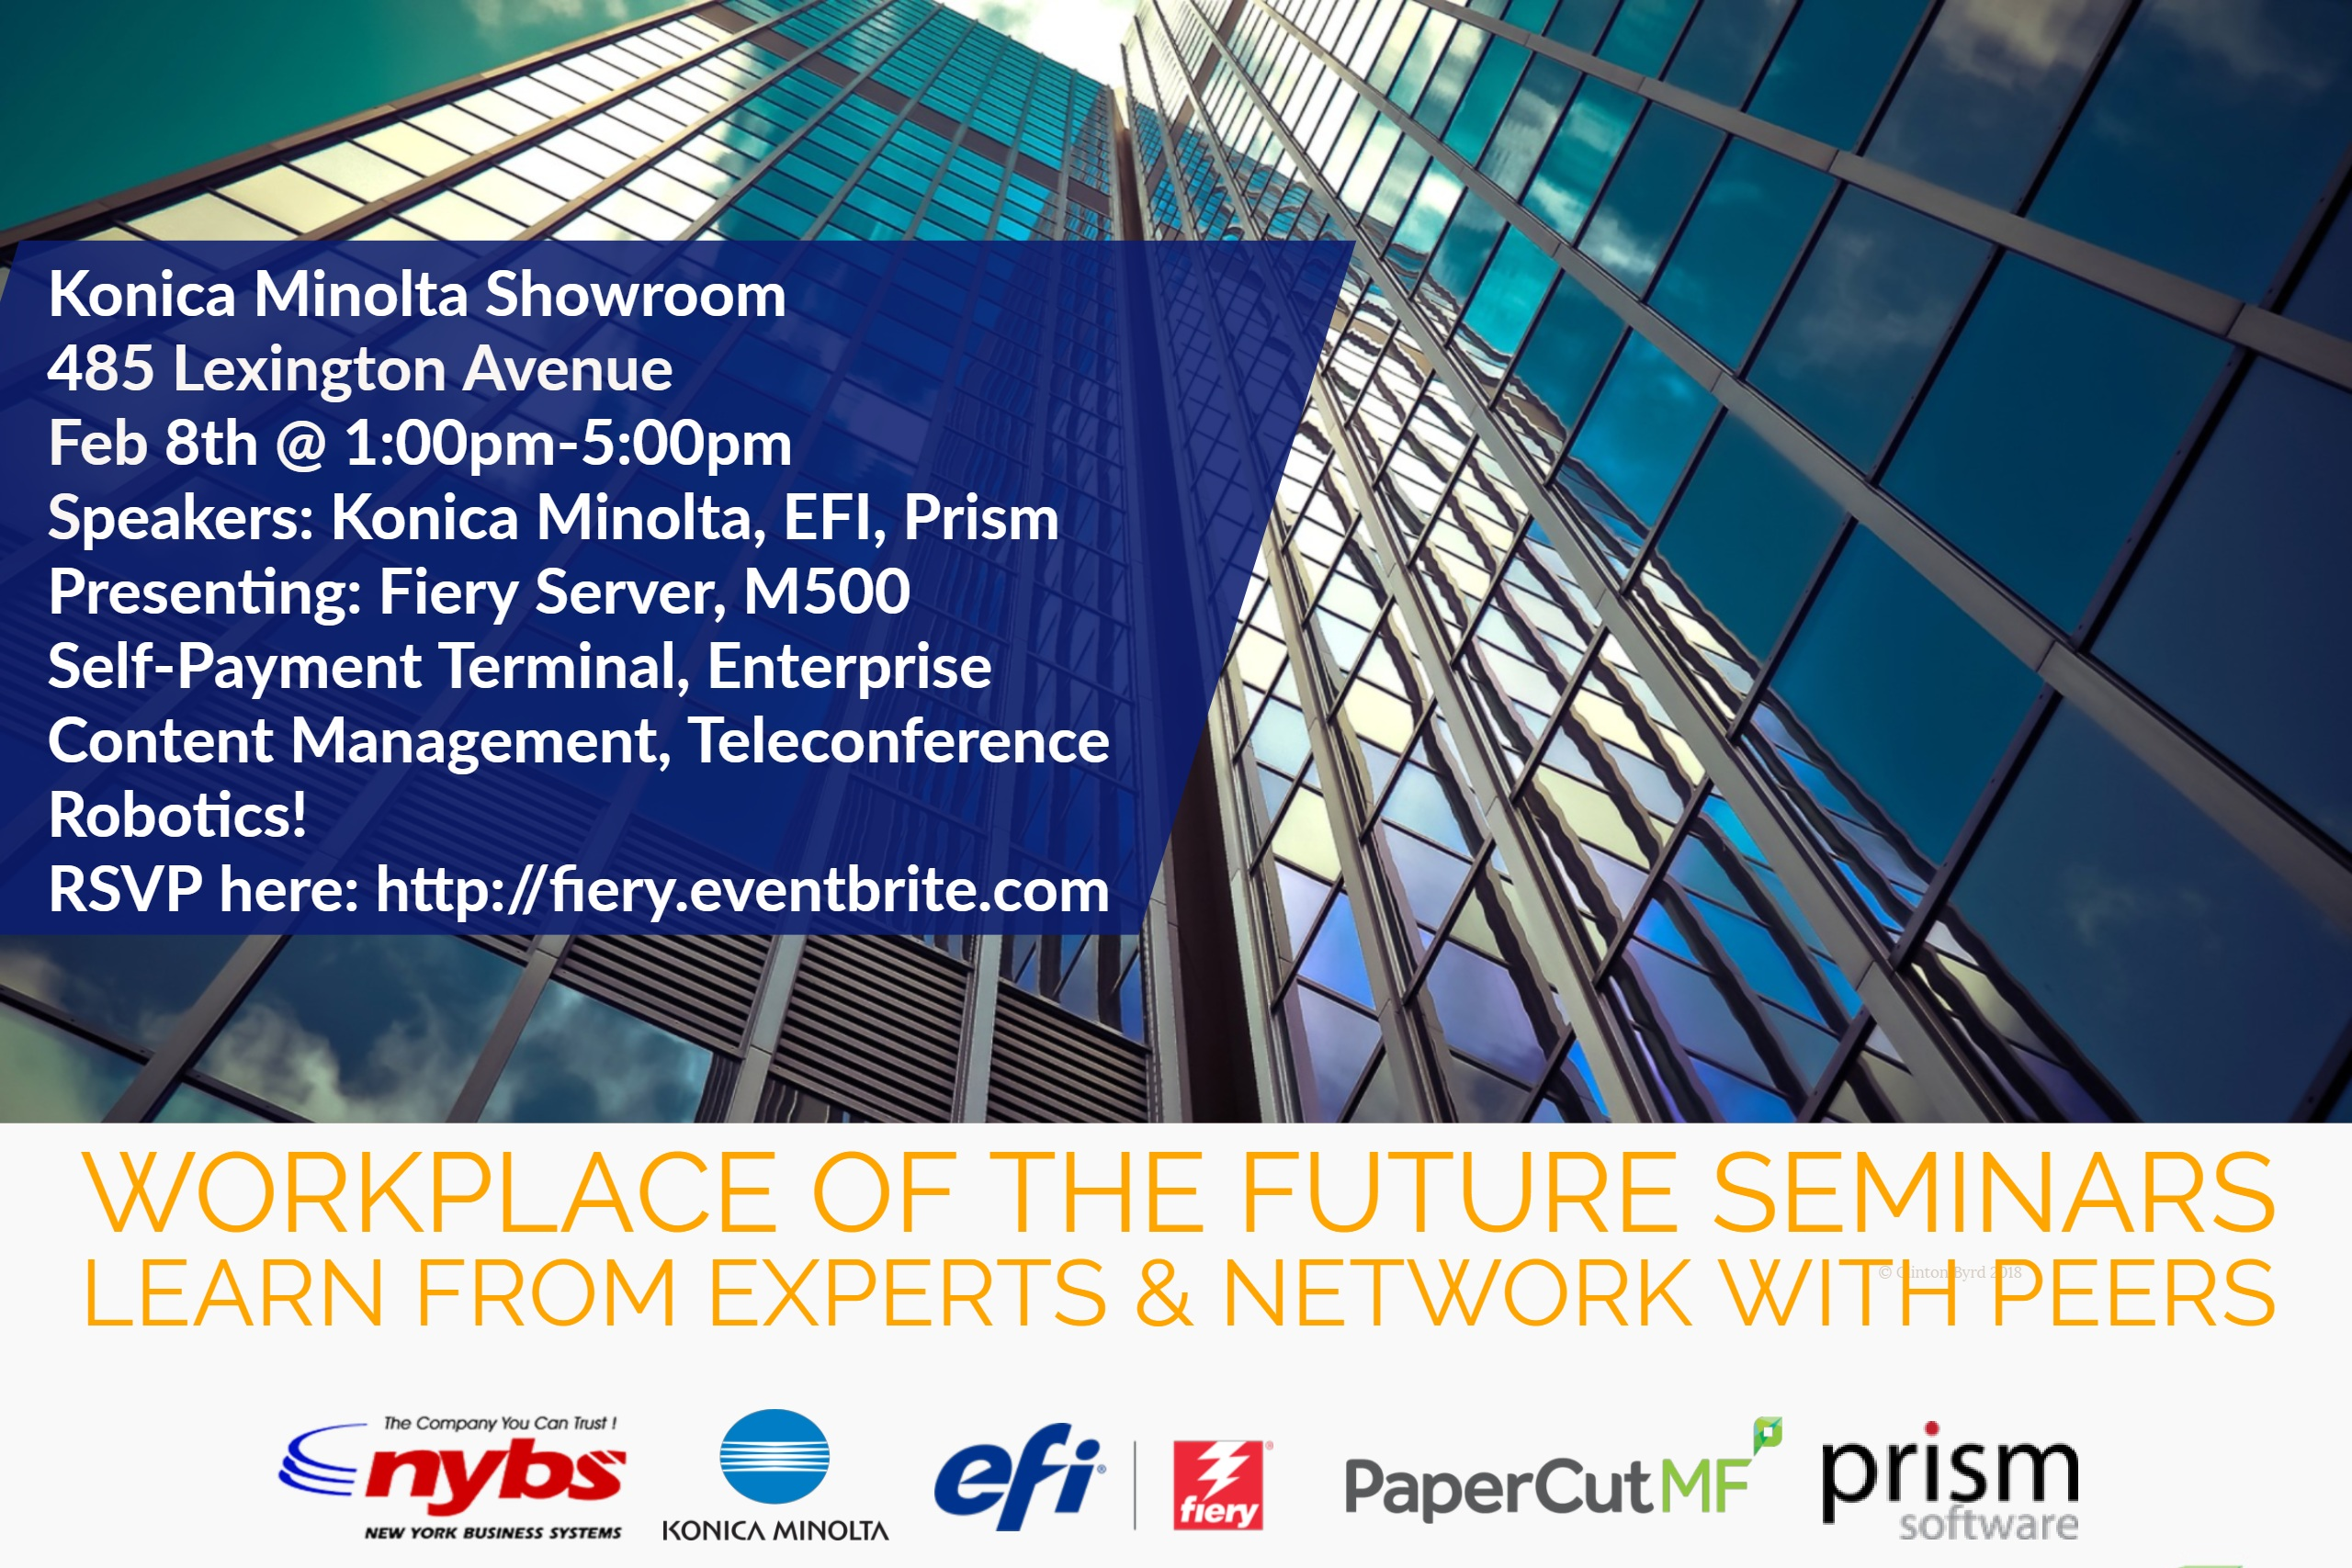 workplace of the future tech events by nybs and konica minlta